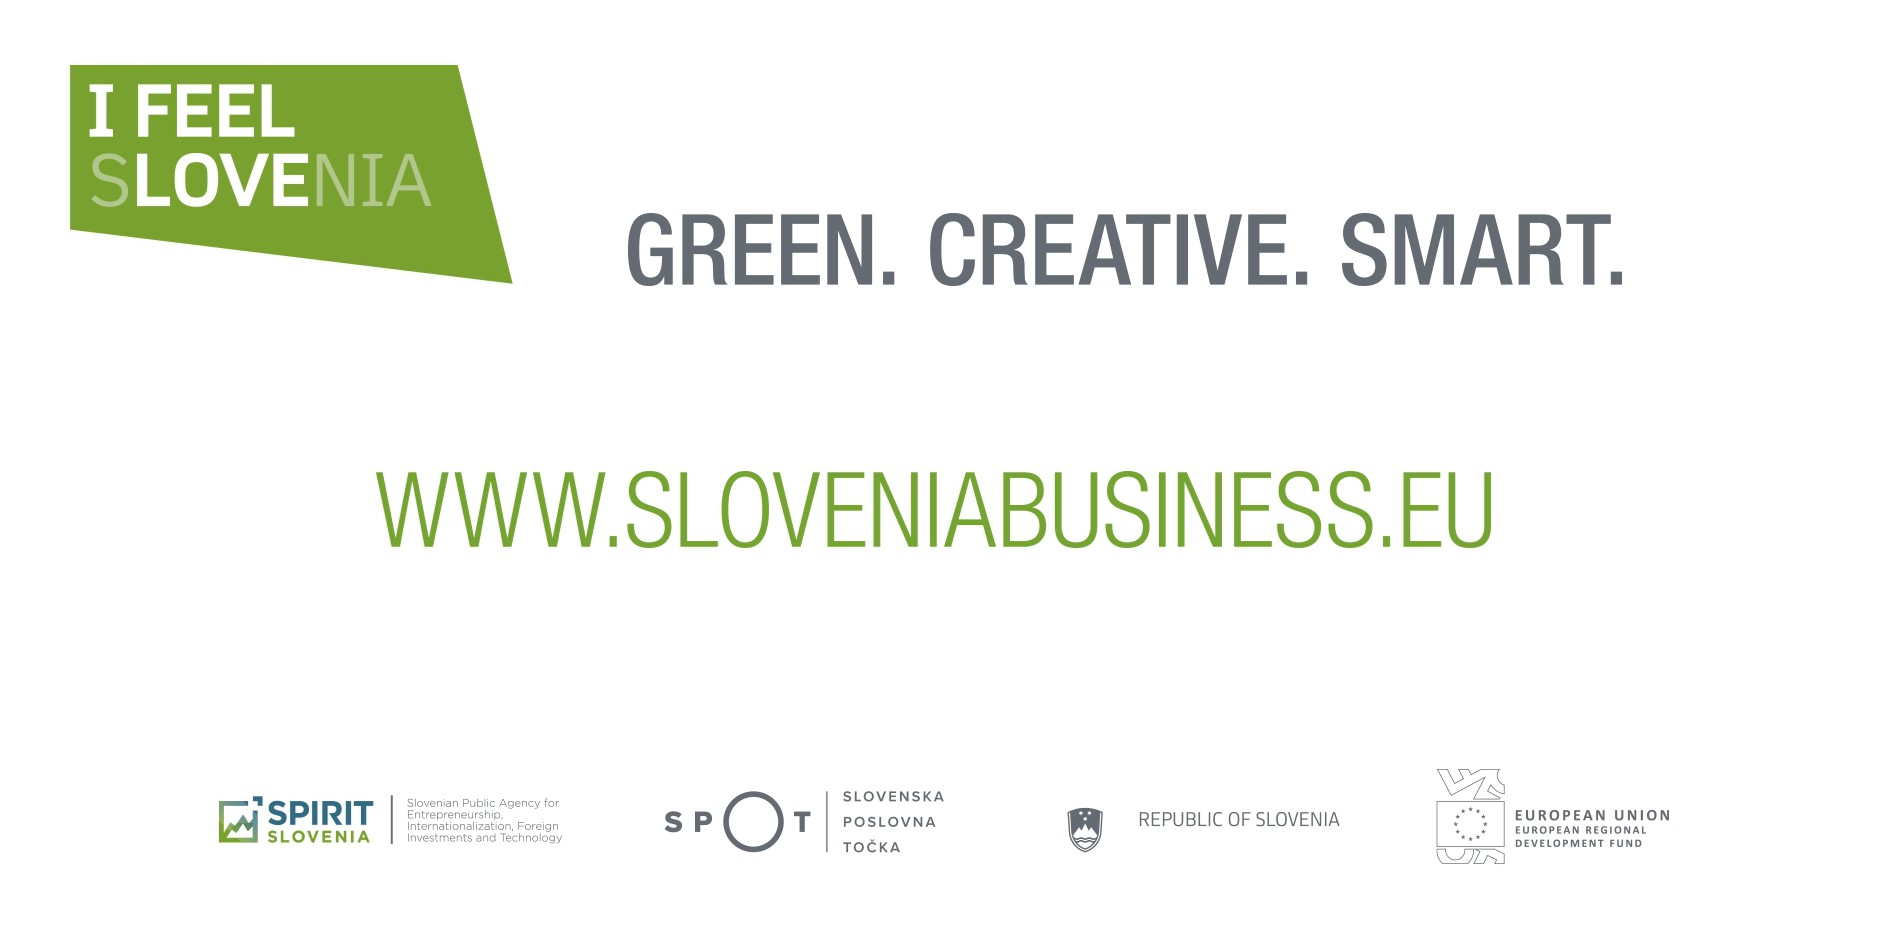 Doing business in Slovenia - business portal Slovenia